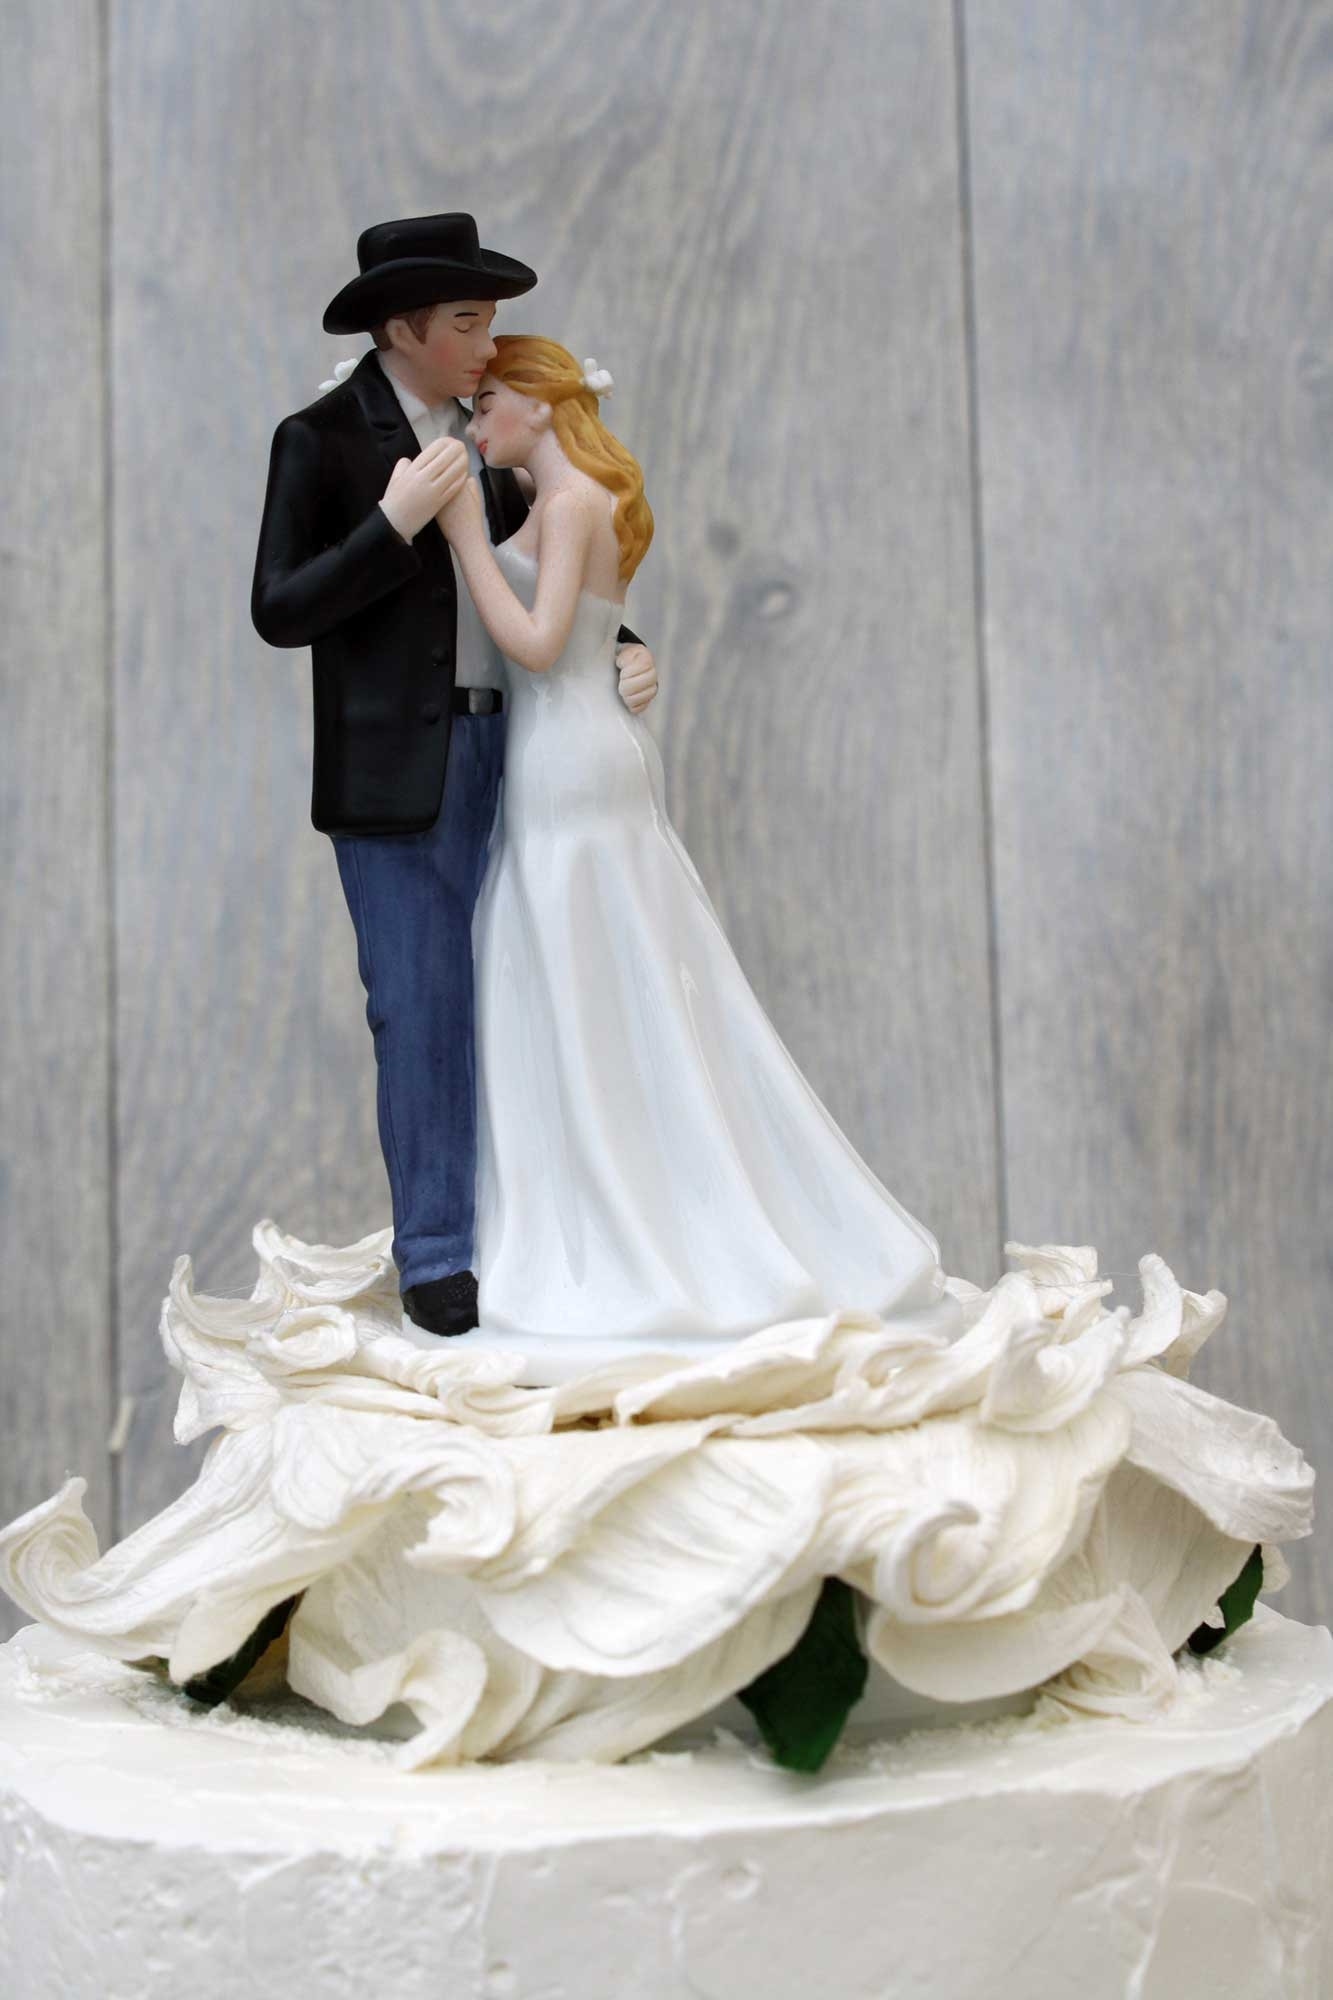 Western Cake Toppers For Wedding Cakes  Western Cake Toppers For Wedding Cakes MARGUSRIGA Baby